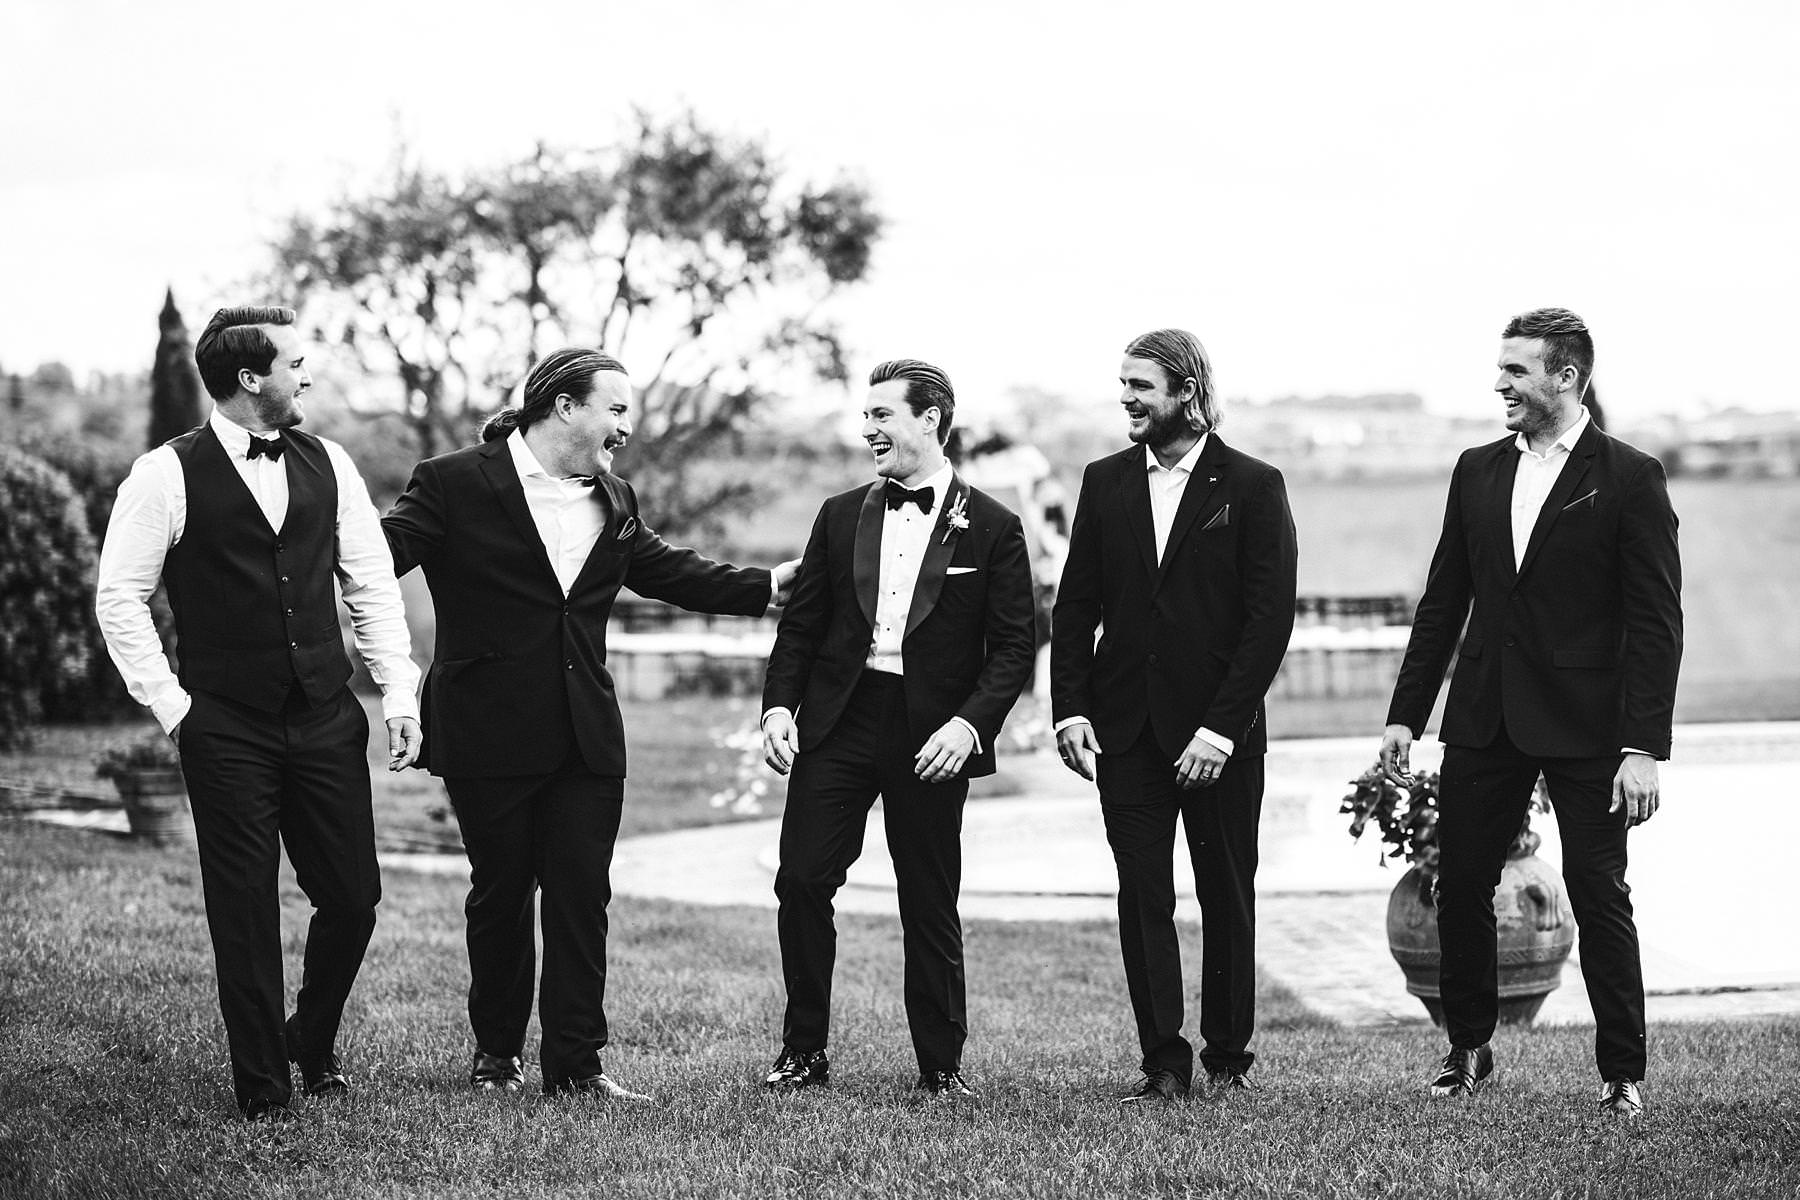 Exciting groom and groomsmen photo shoot just read for the intimate wedding ceremony at Villa l'Antica Posta in Umbria